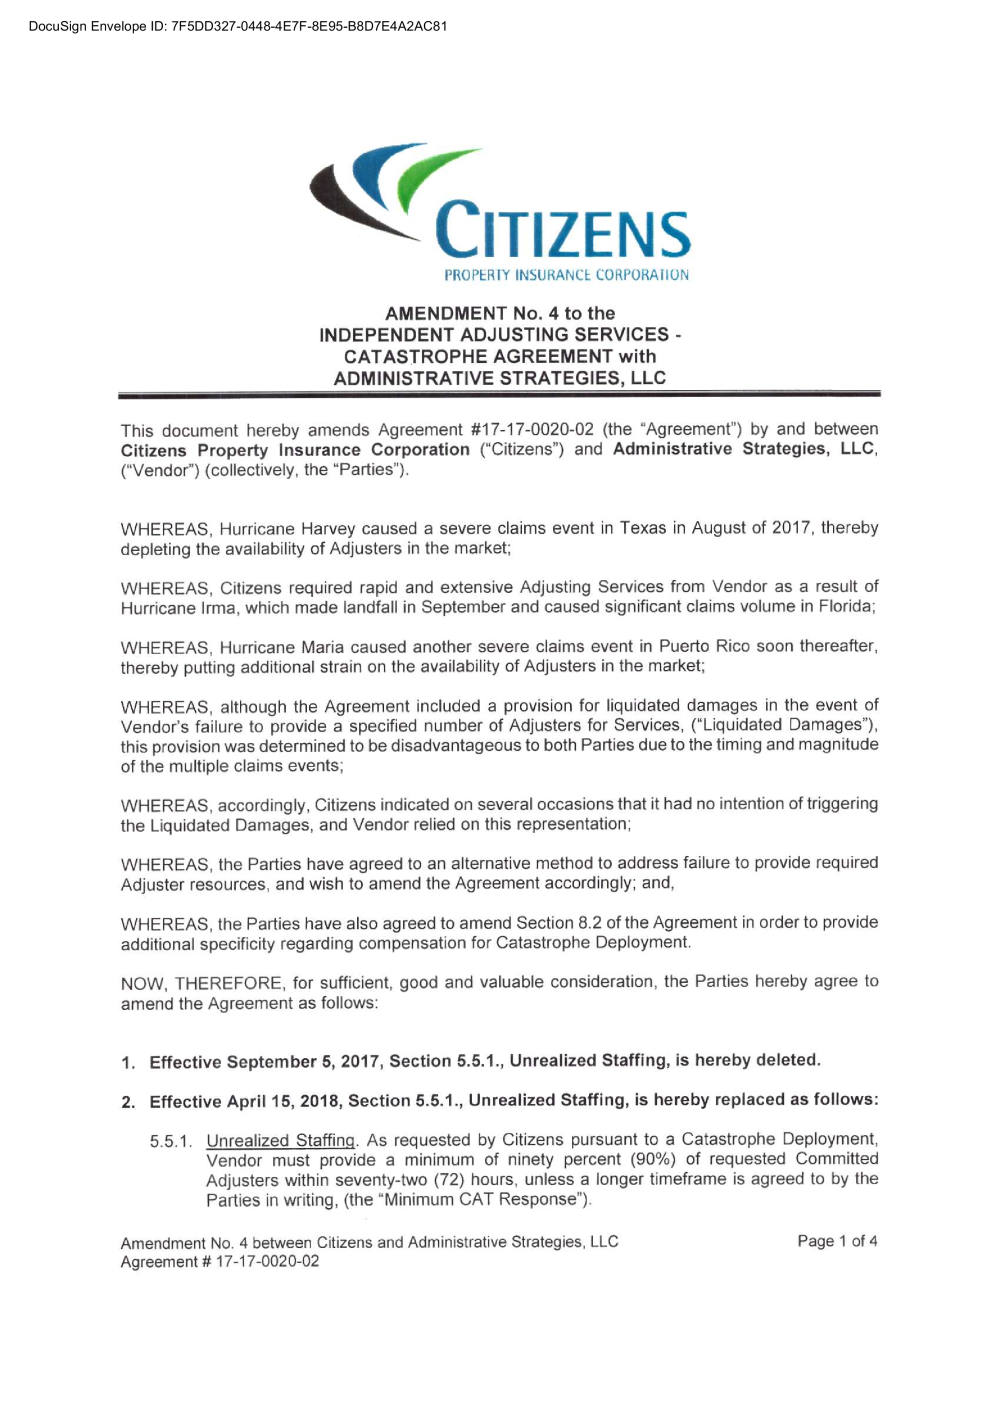 Amendment 4_1717002002 pdf - Contact Us - Citizens